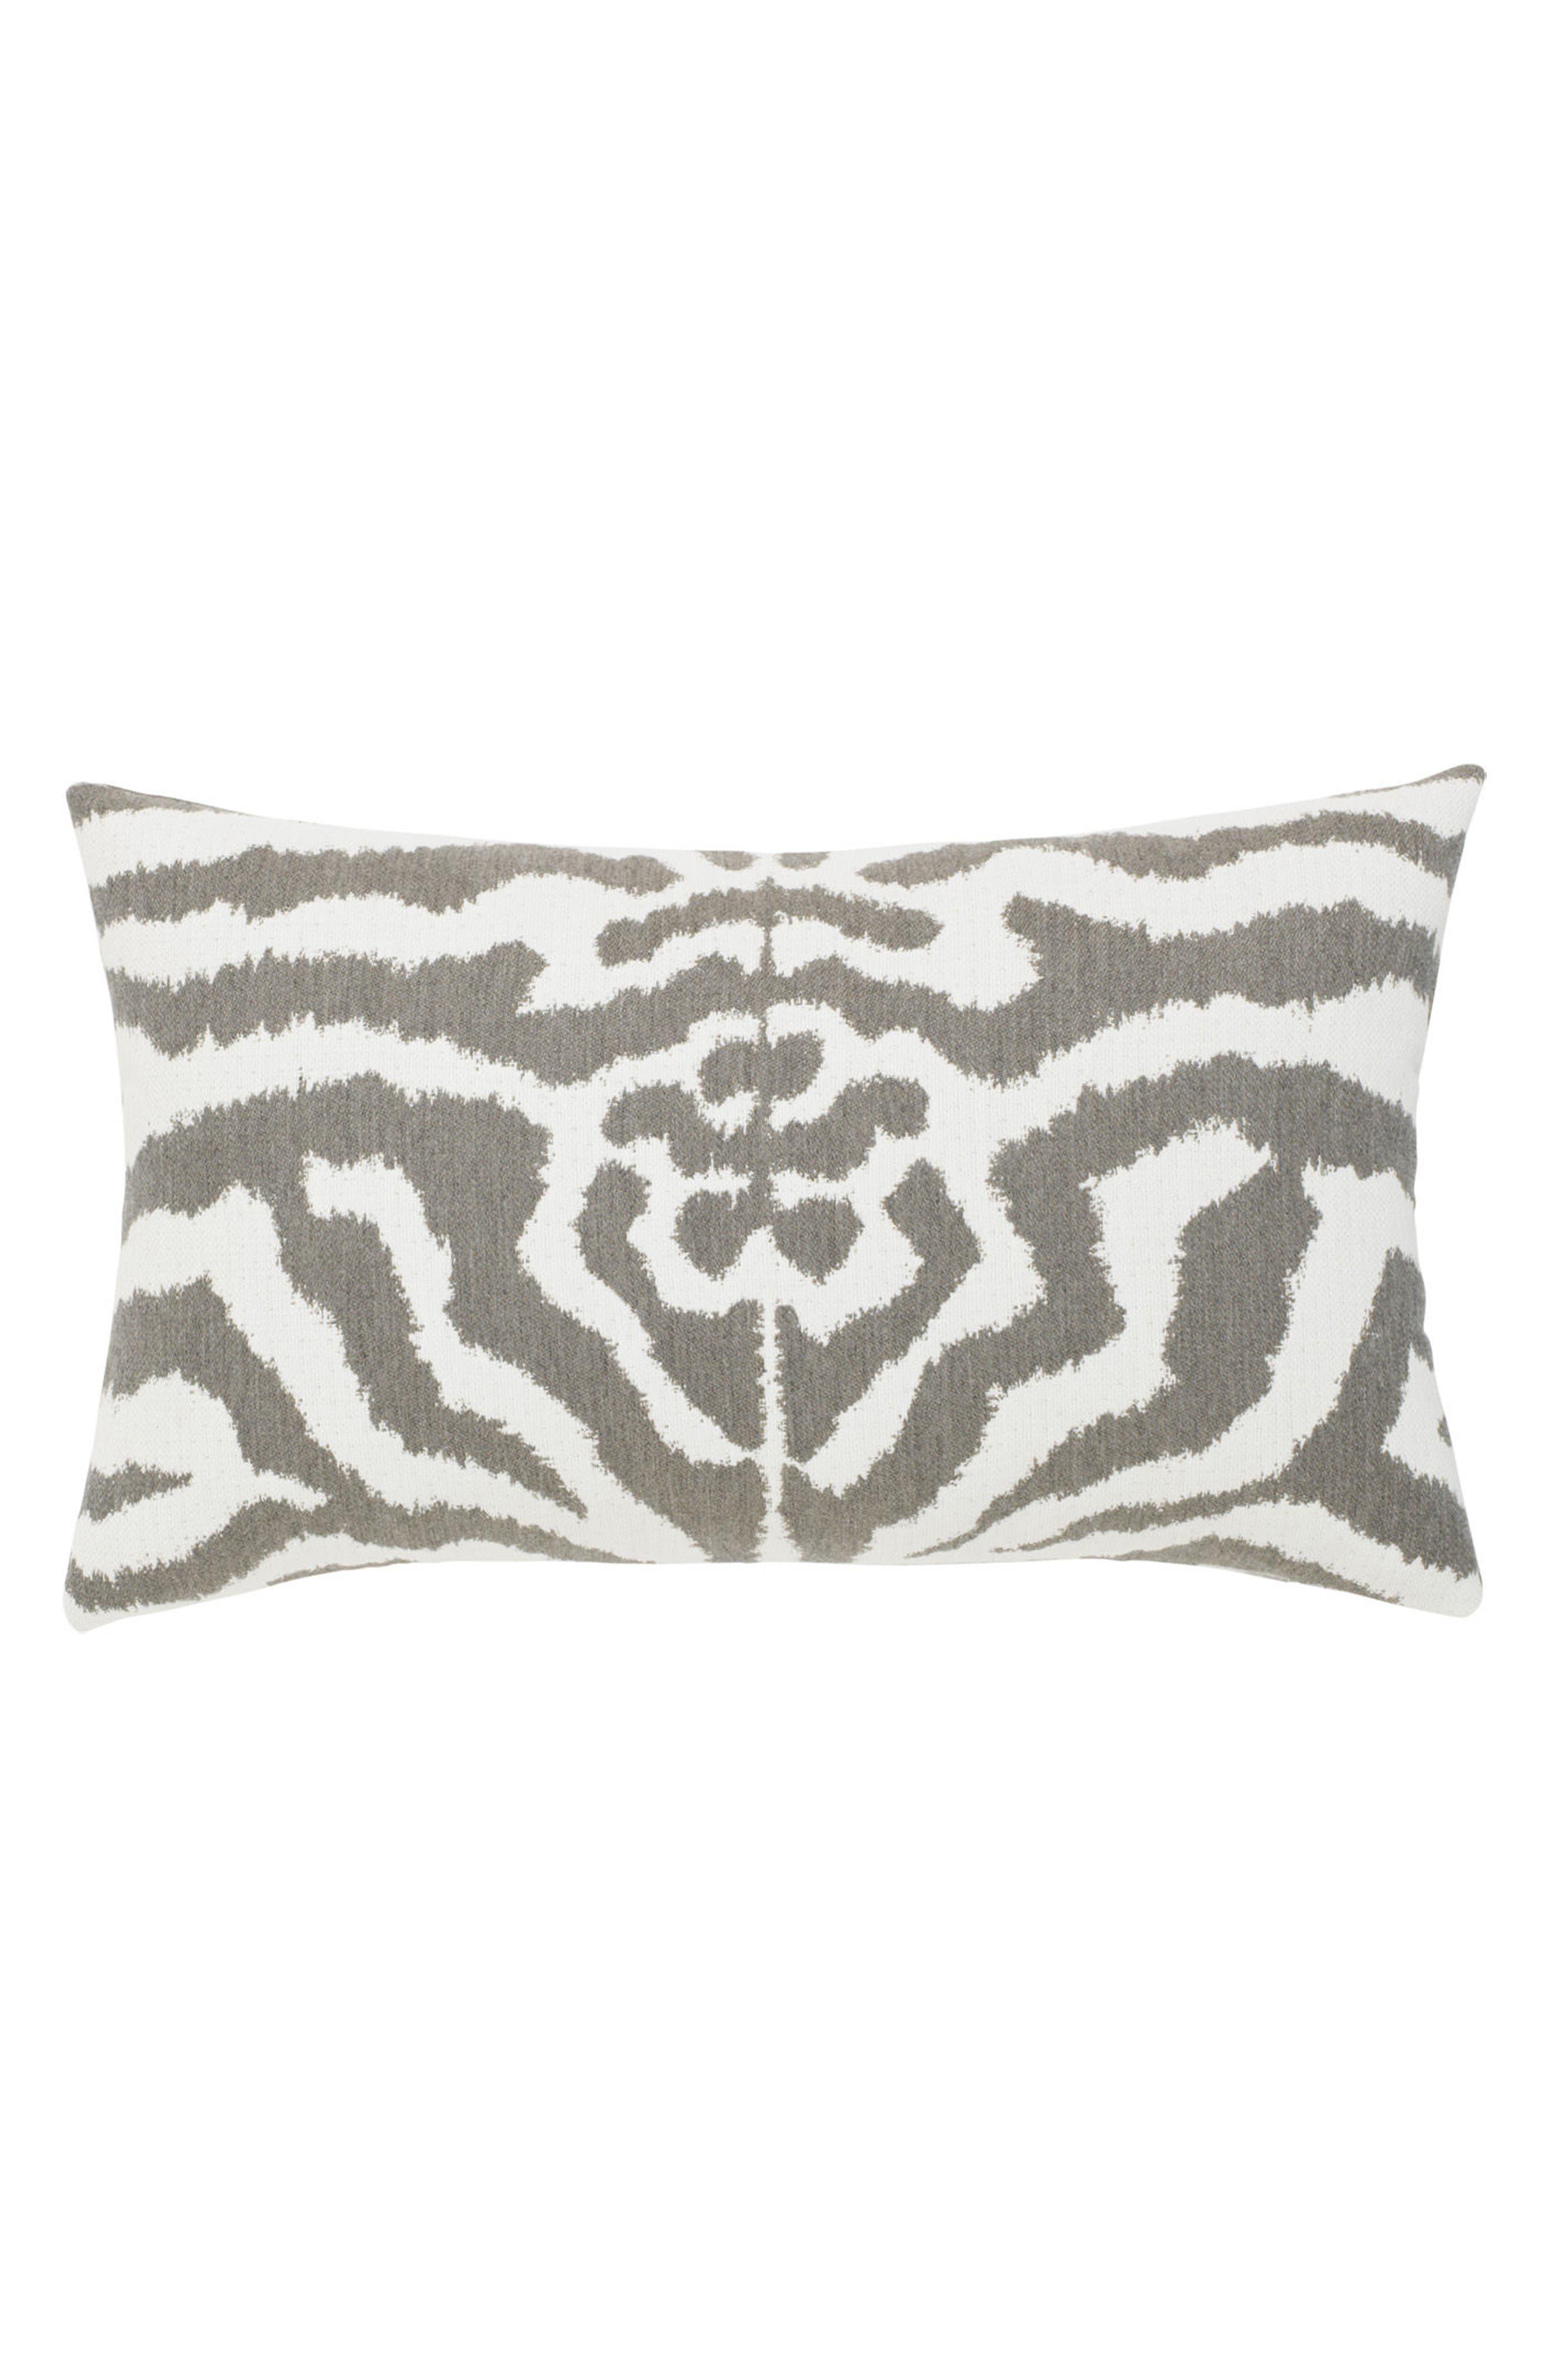 Zebra Gray Indoor/Outdoor Accent Pillow,                             Alternate thumbnail 3, color,                             Gray White